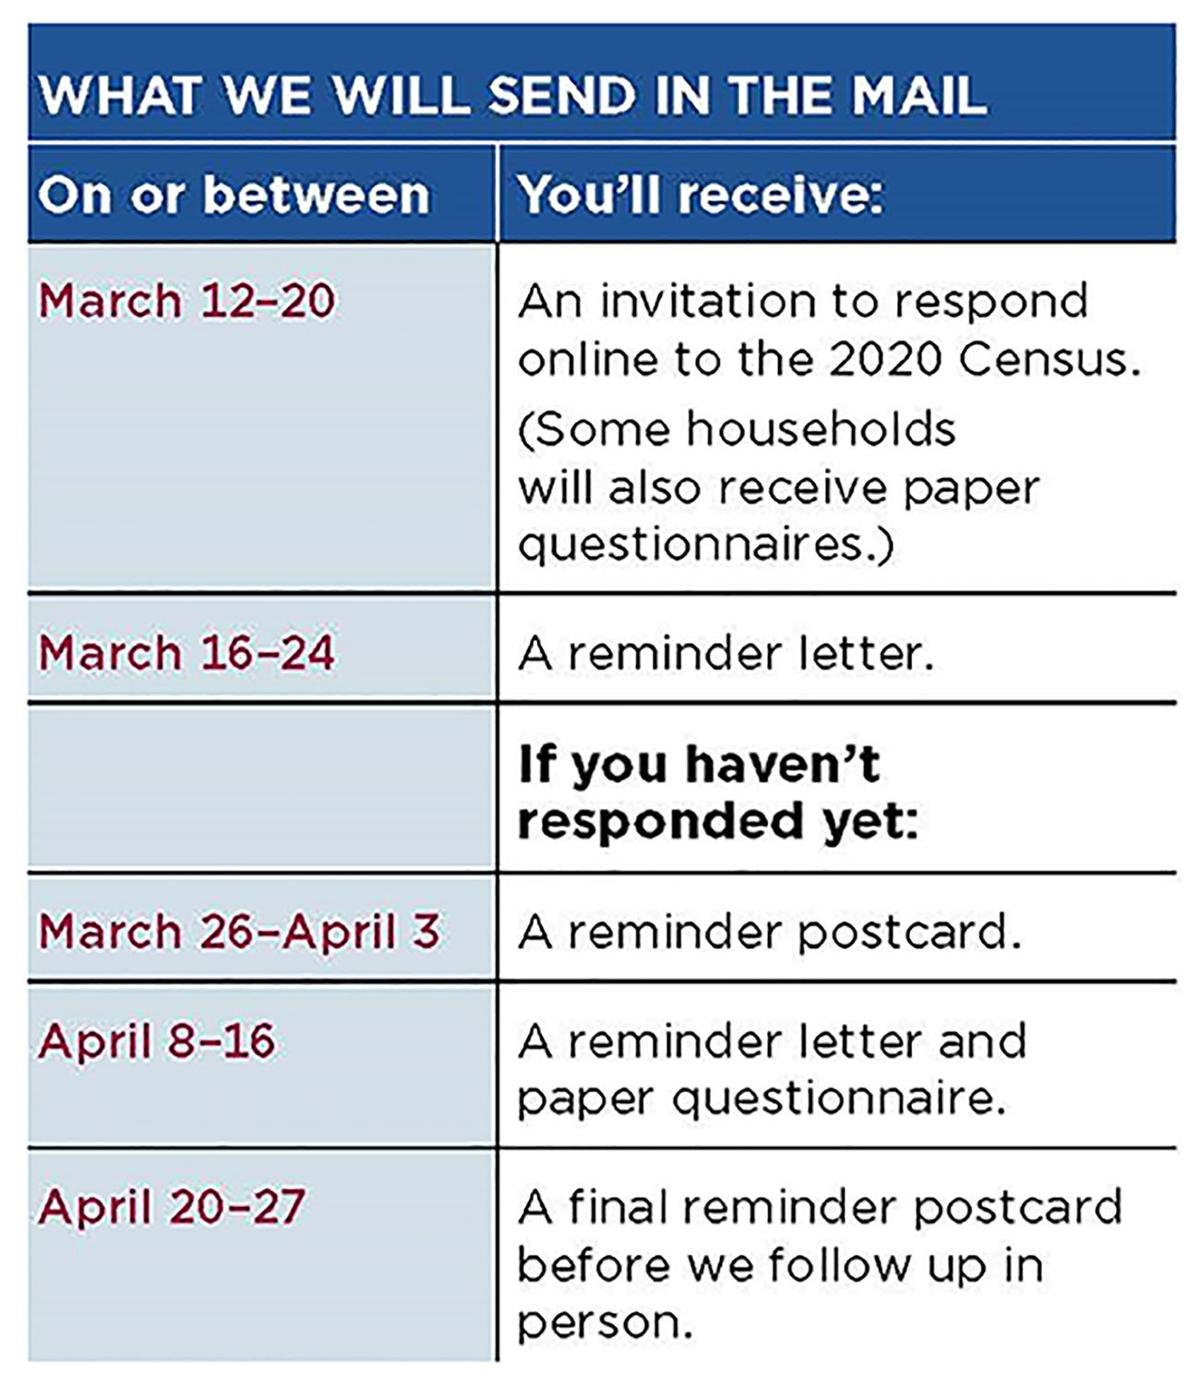 2020 Census mailing schedule